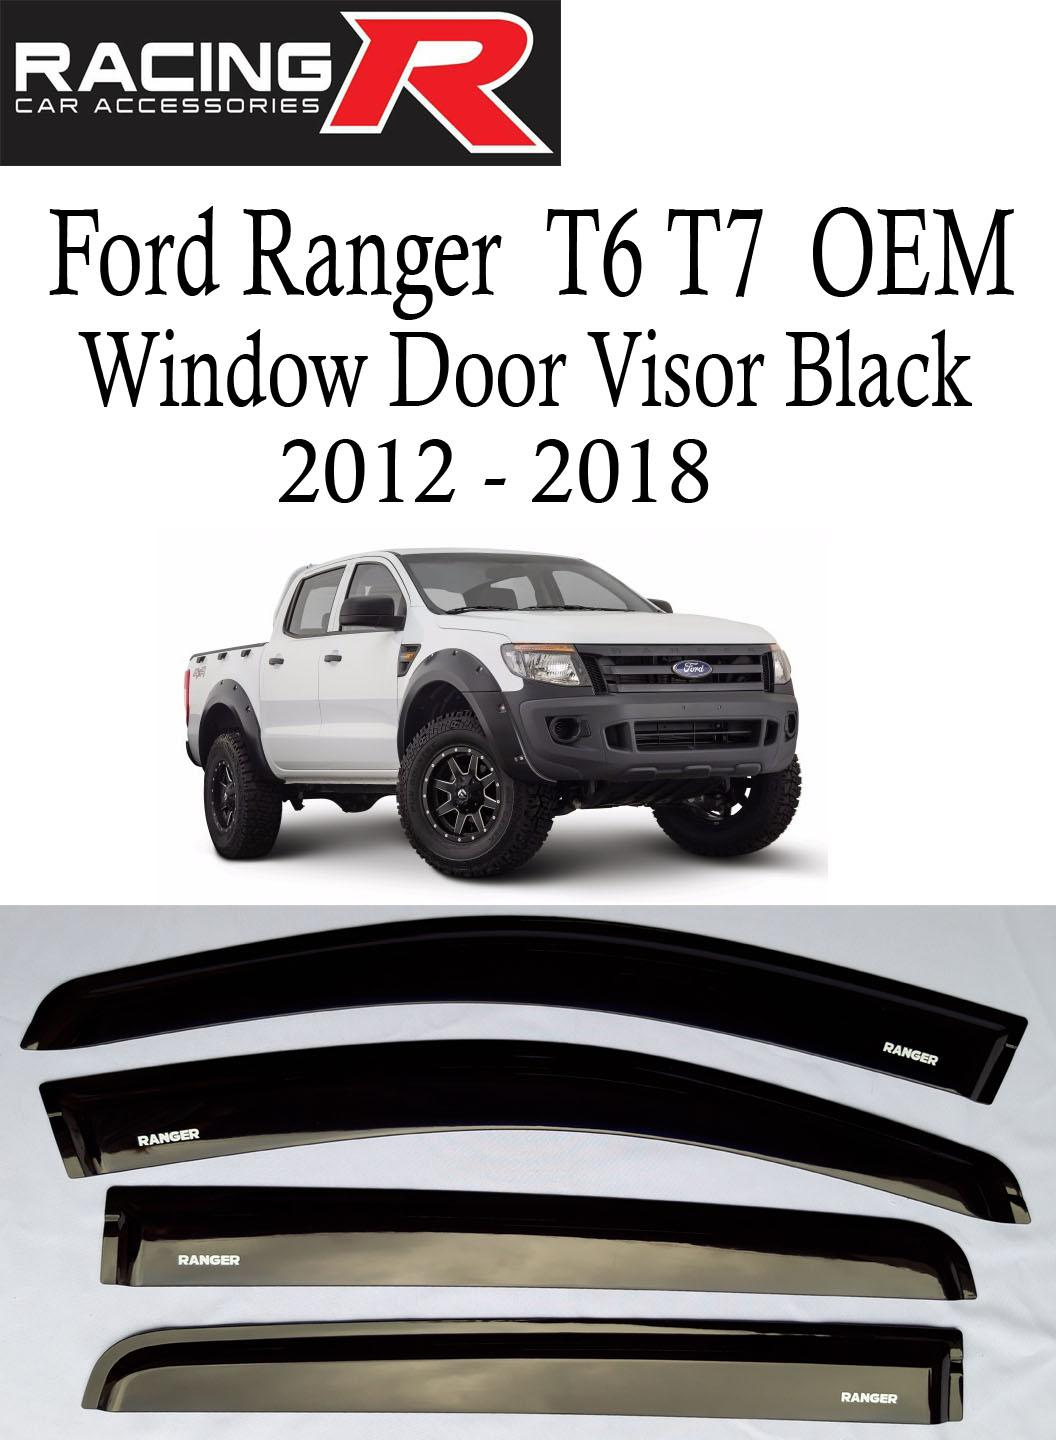 Ford ranger t6 and t7 2012 to 2018 oem black window door visor made in